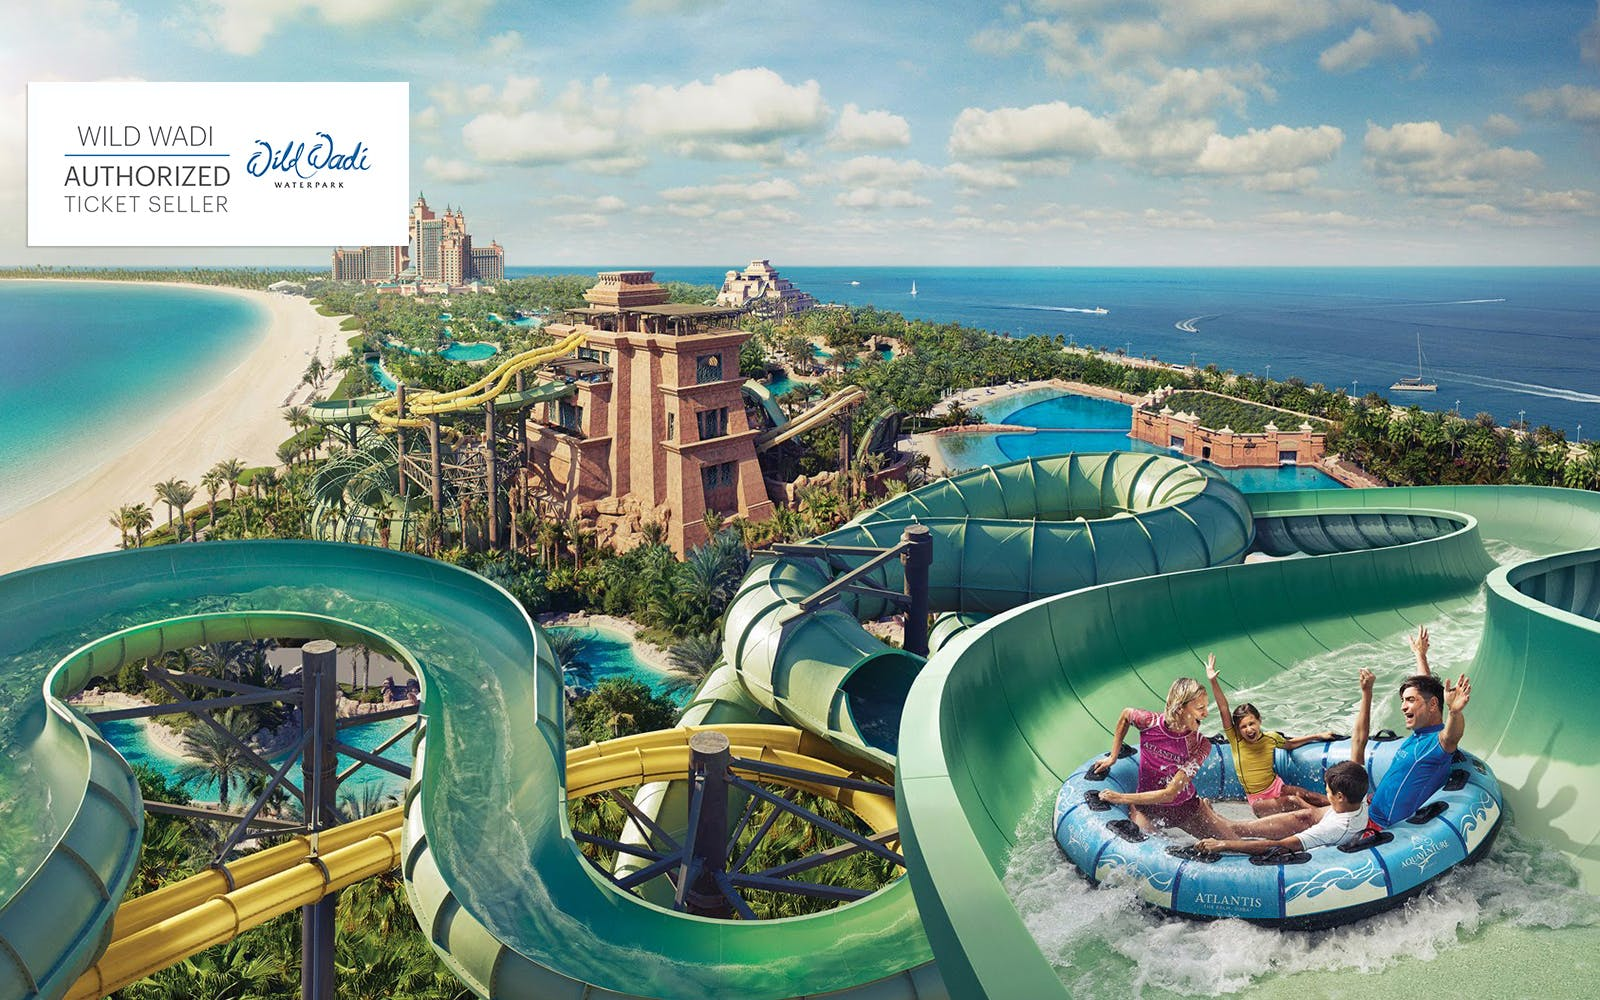 Best Theme Parks in Dubai - Wild Wadi - 1